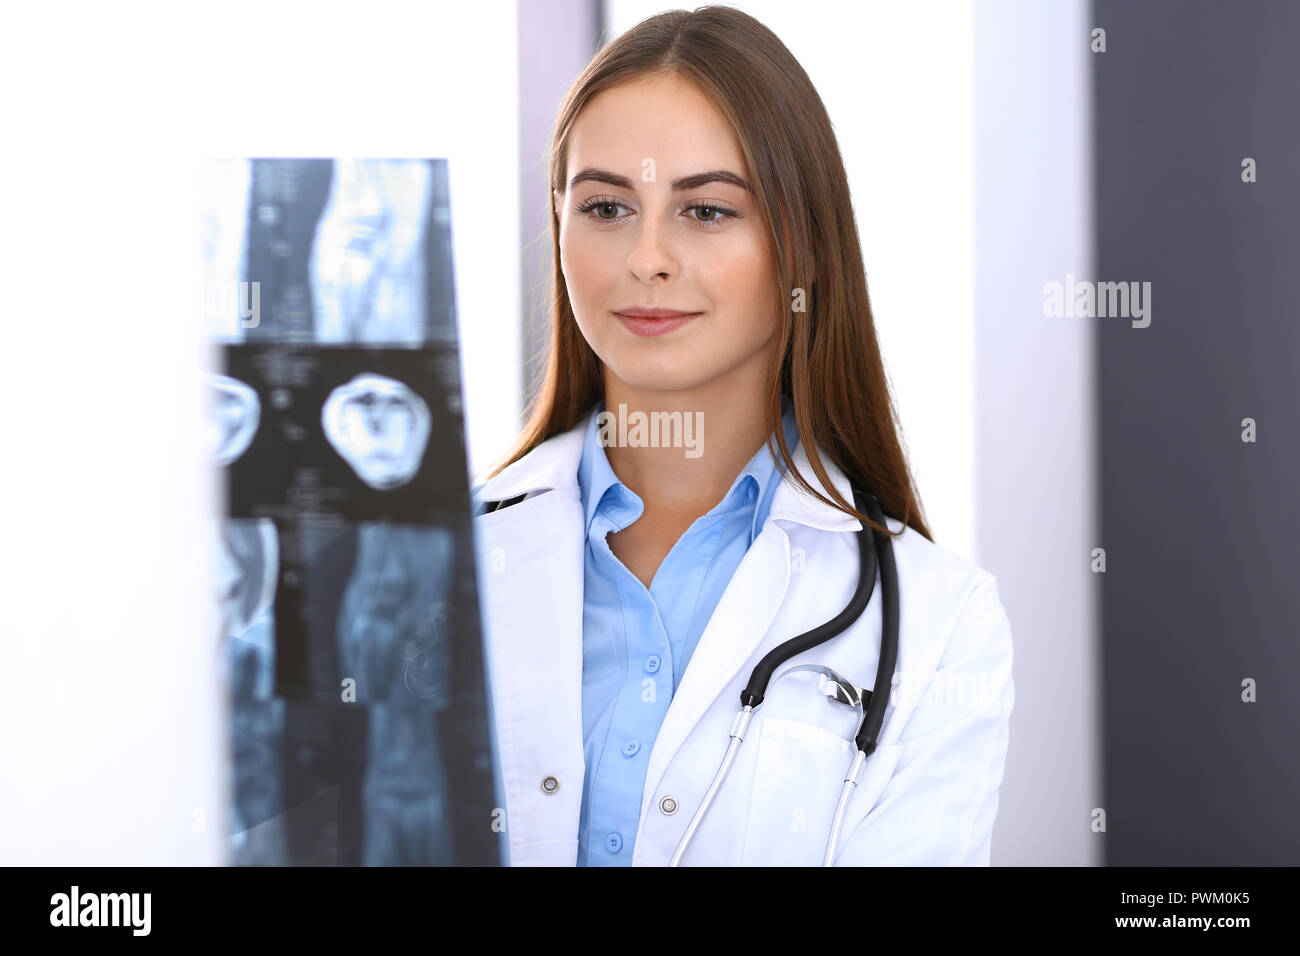 Doctor woman examining x-ray picture while standing near window in hospital. Surgeon or orthopedist at work. Medicine and healthcare concept. - Stock Image